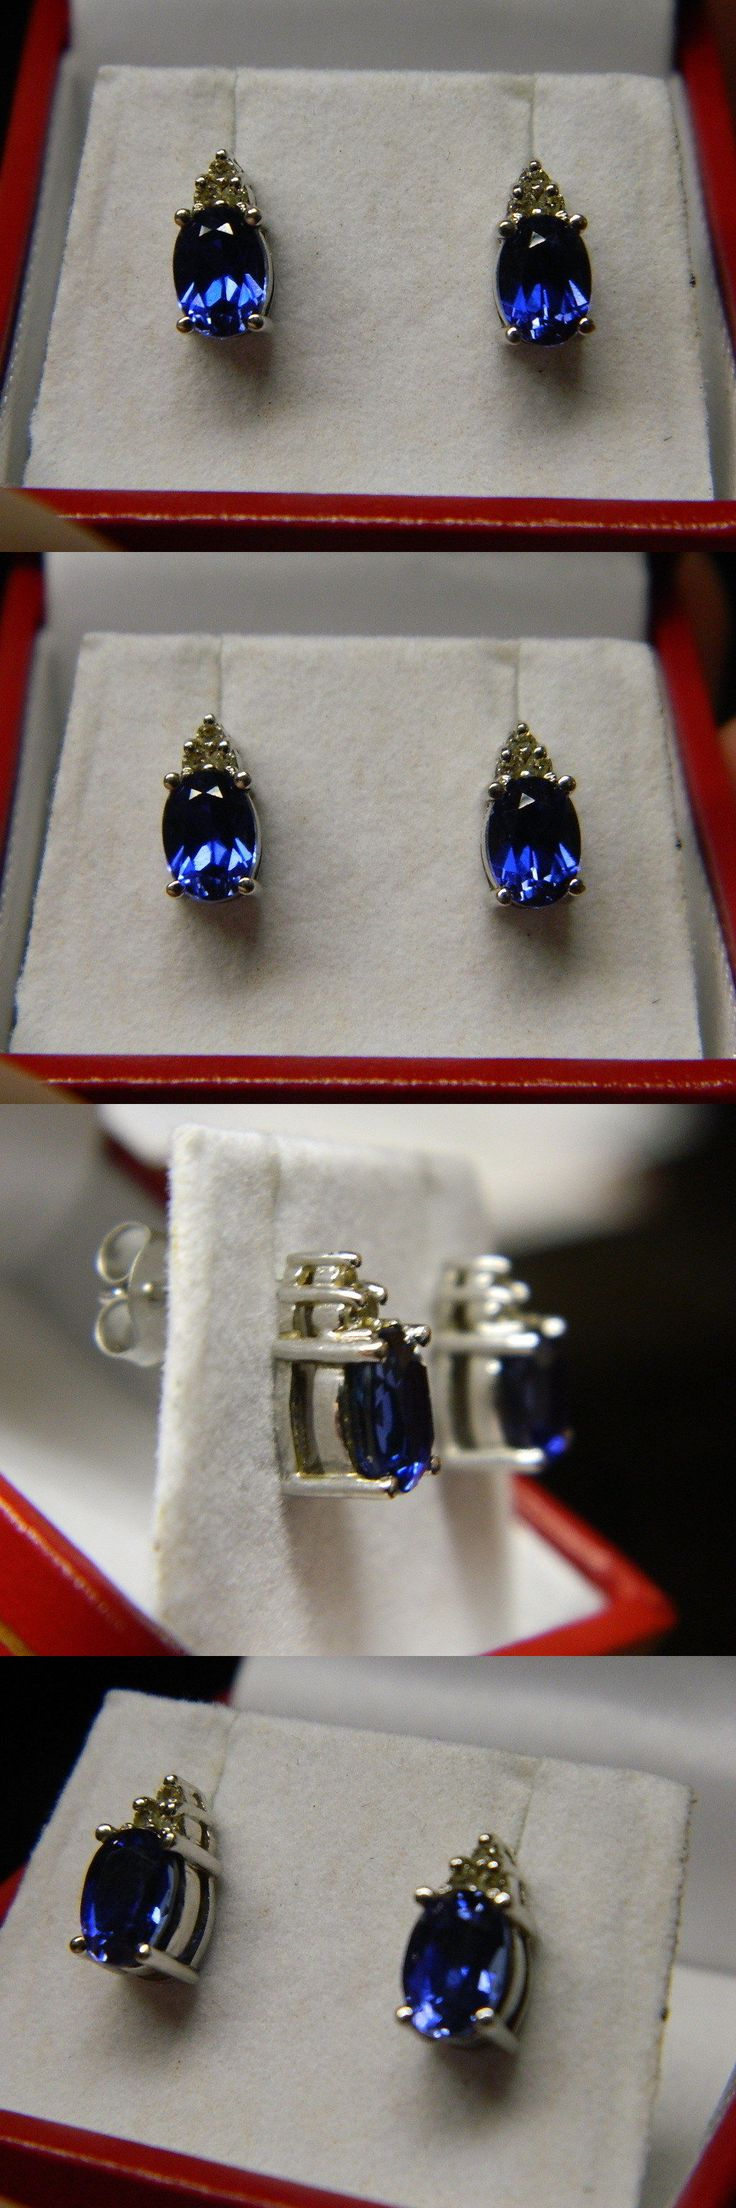 Gemstone 164321: Oval Blue Sapphire And Diamond Earrings 3Ct Tw 14K White Gold BUY IT NOW ONLY: $110.0